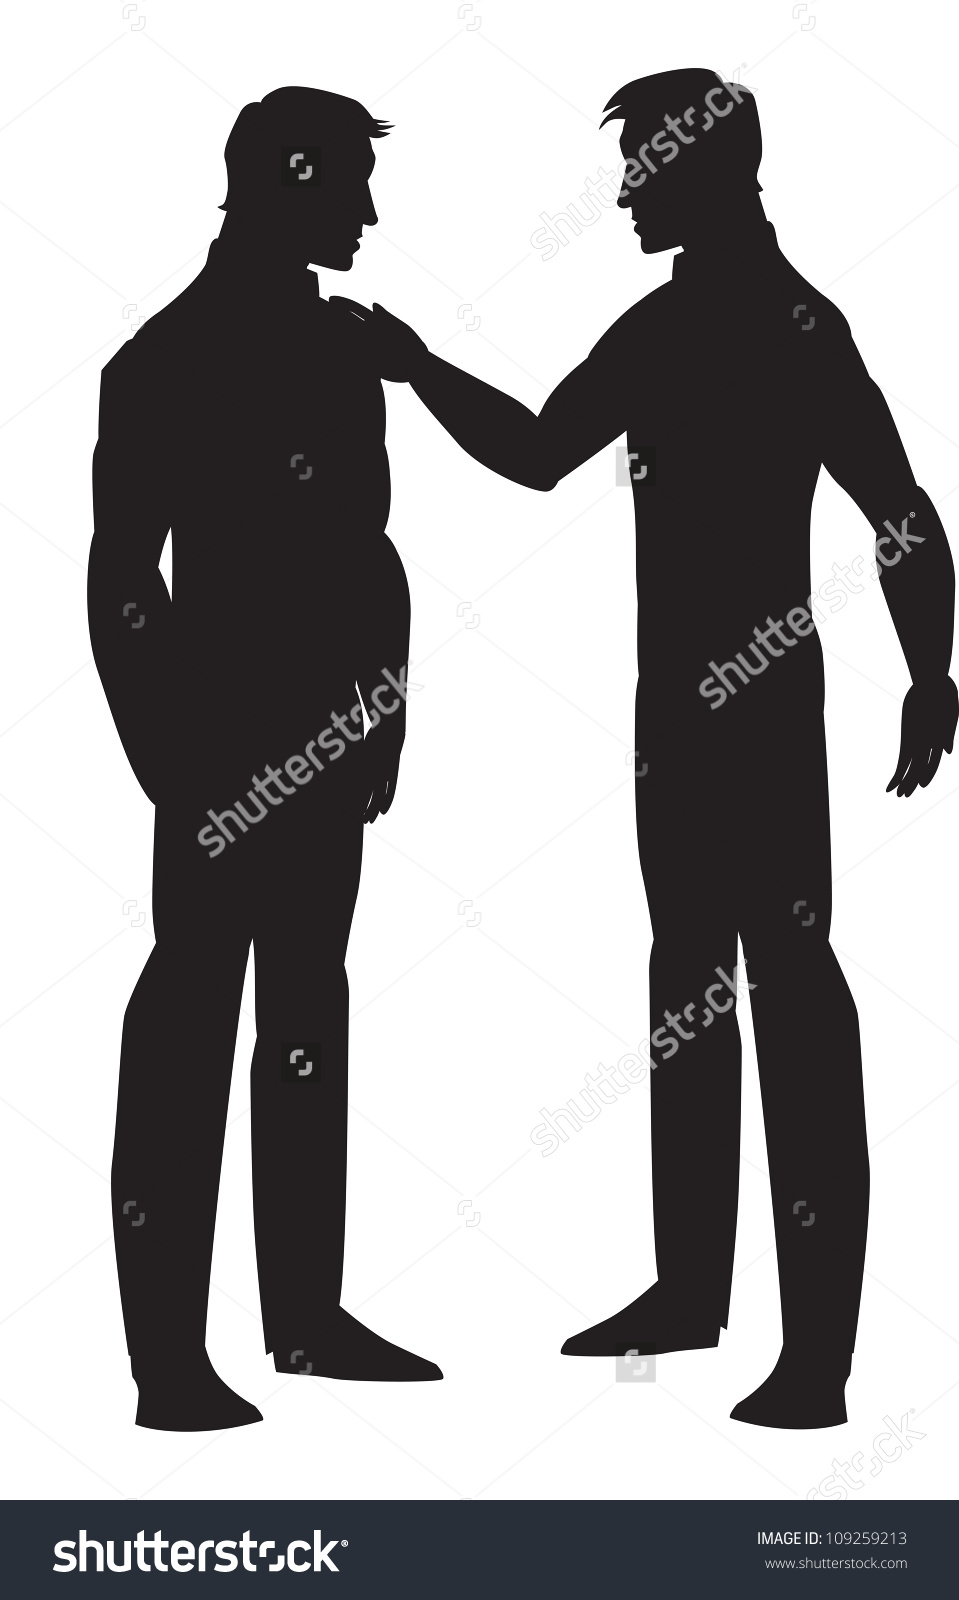 Picture Of Two Friends Talking Stock Photos, Images, & Pictures.